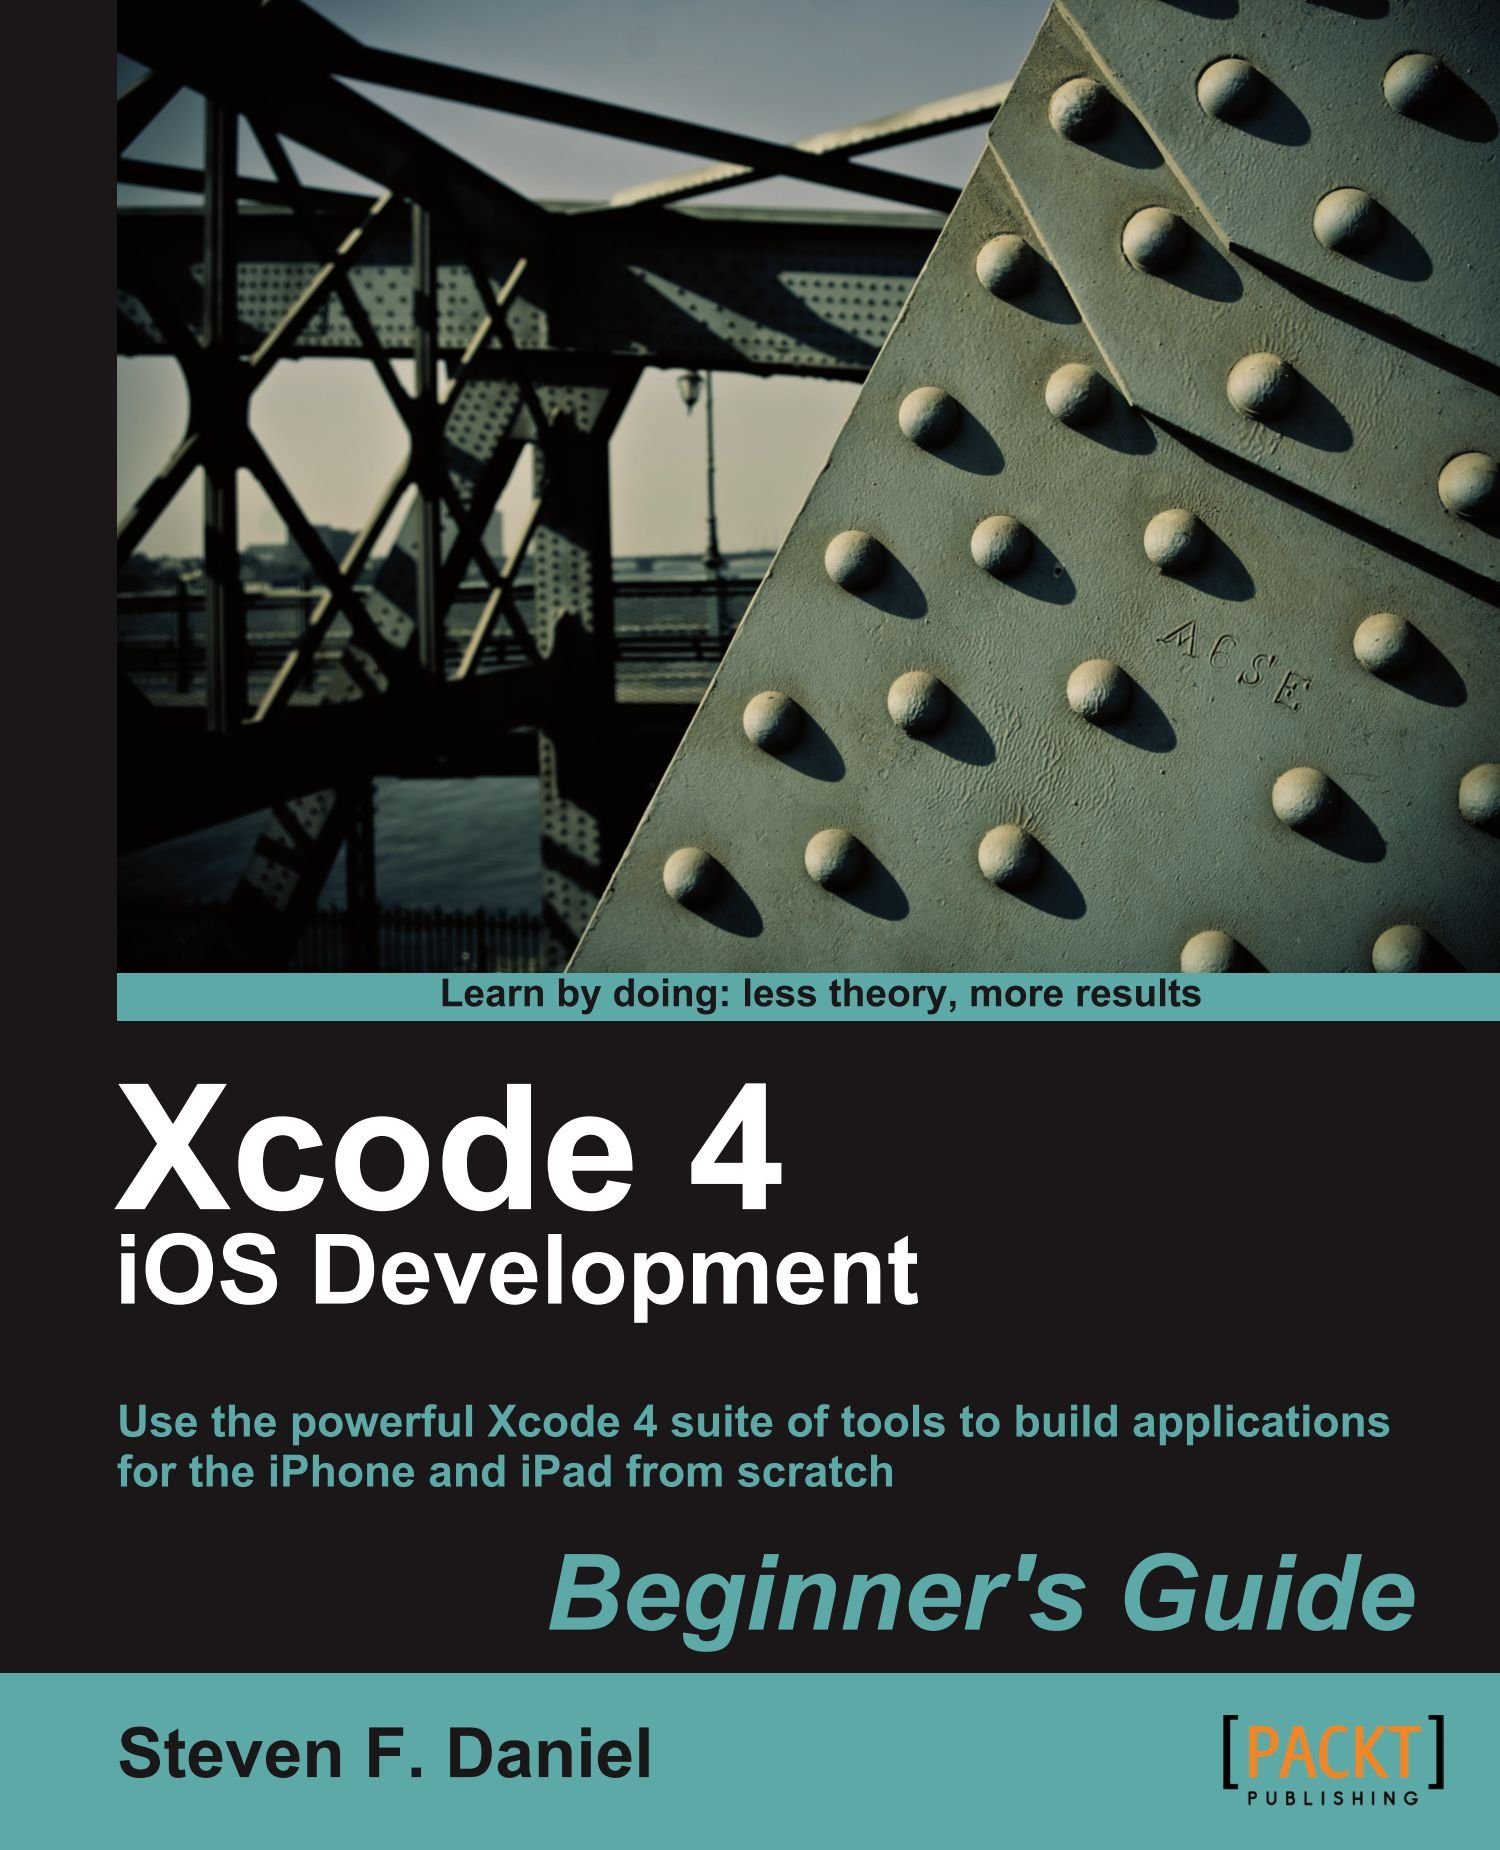 Xcode 4 ios development beginners guide steven f daniel xcode 4 ios development beginners guide steven f daniel 9781849691307 amazon books fandeluxe Choice Image